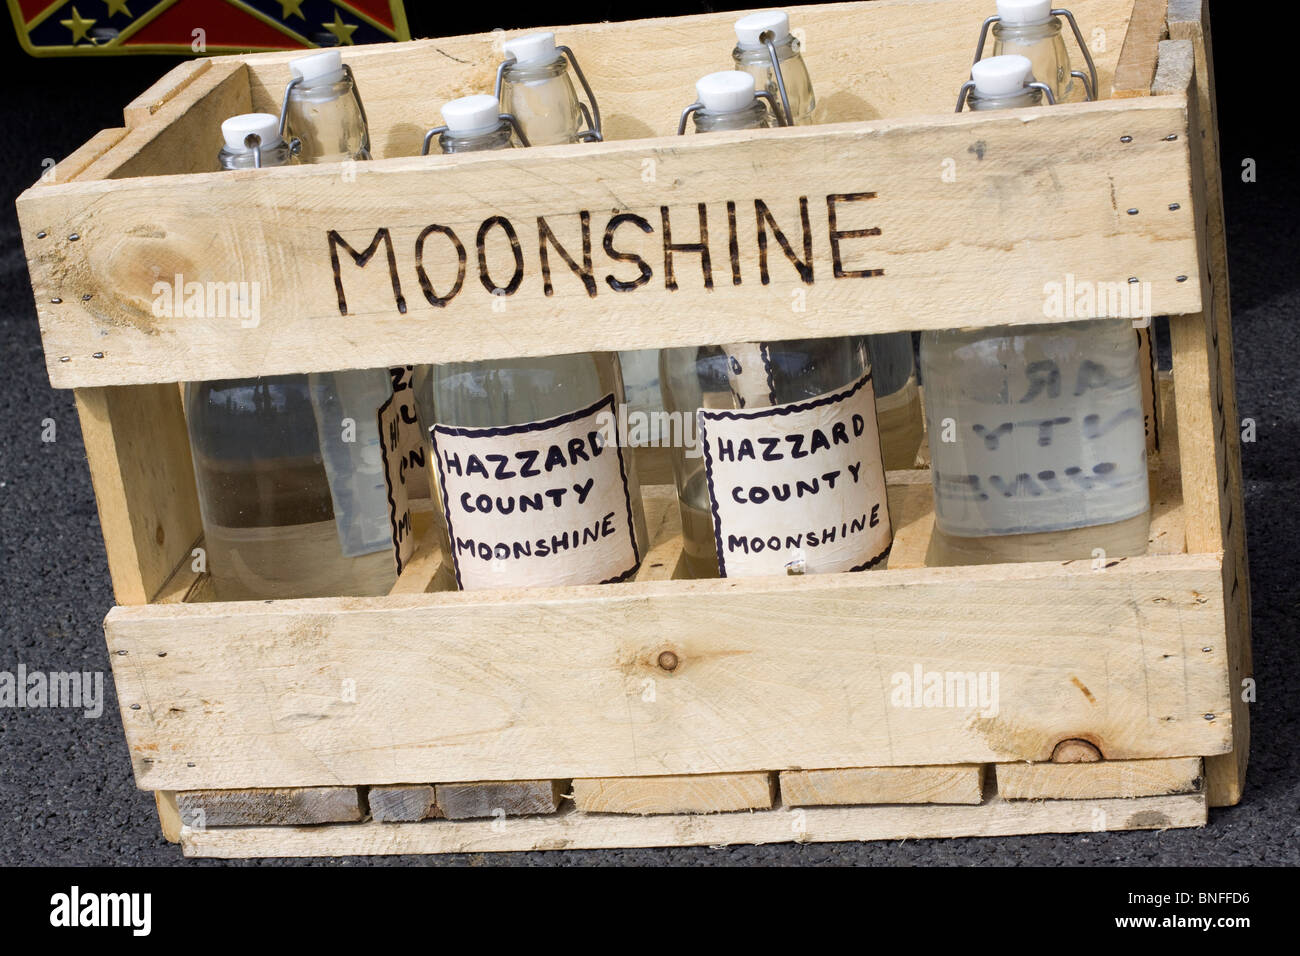 Moonshine on Show at Santa Pod raceway - Stock Image